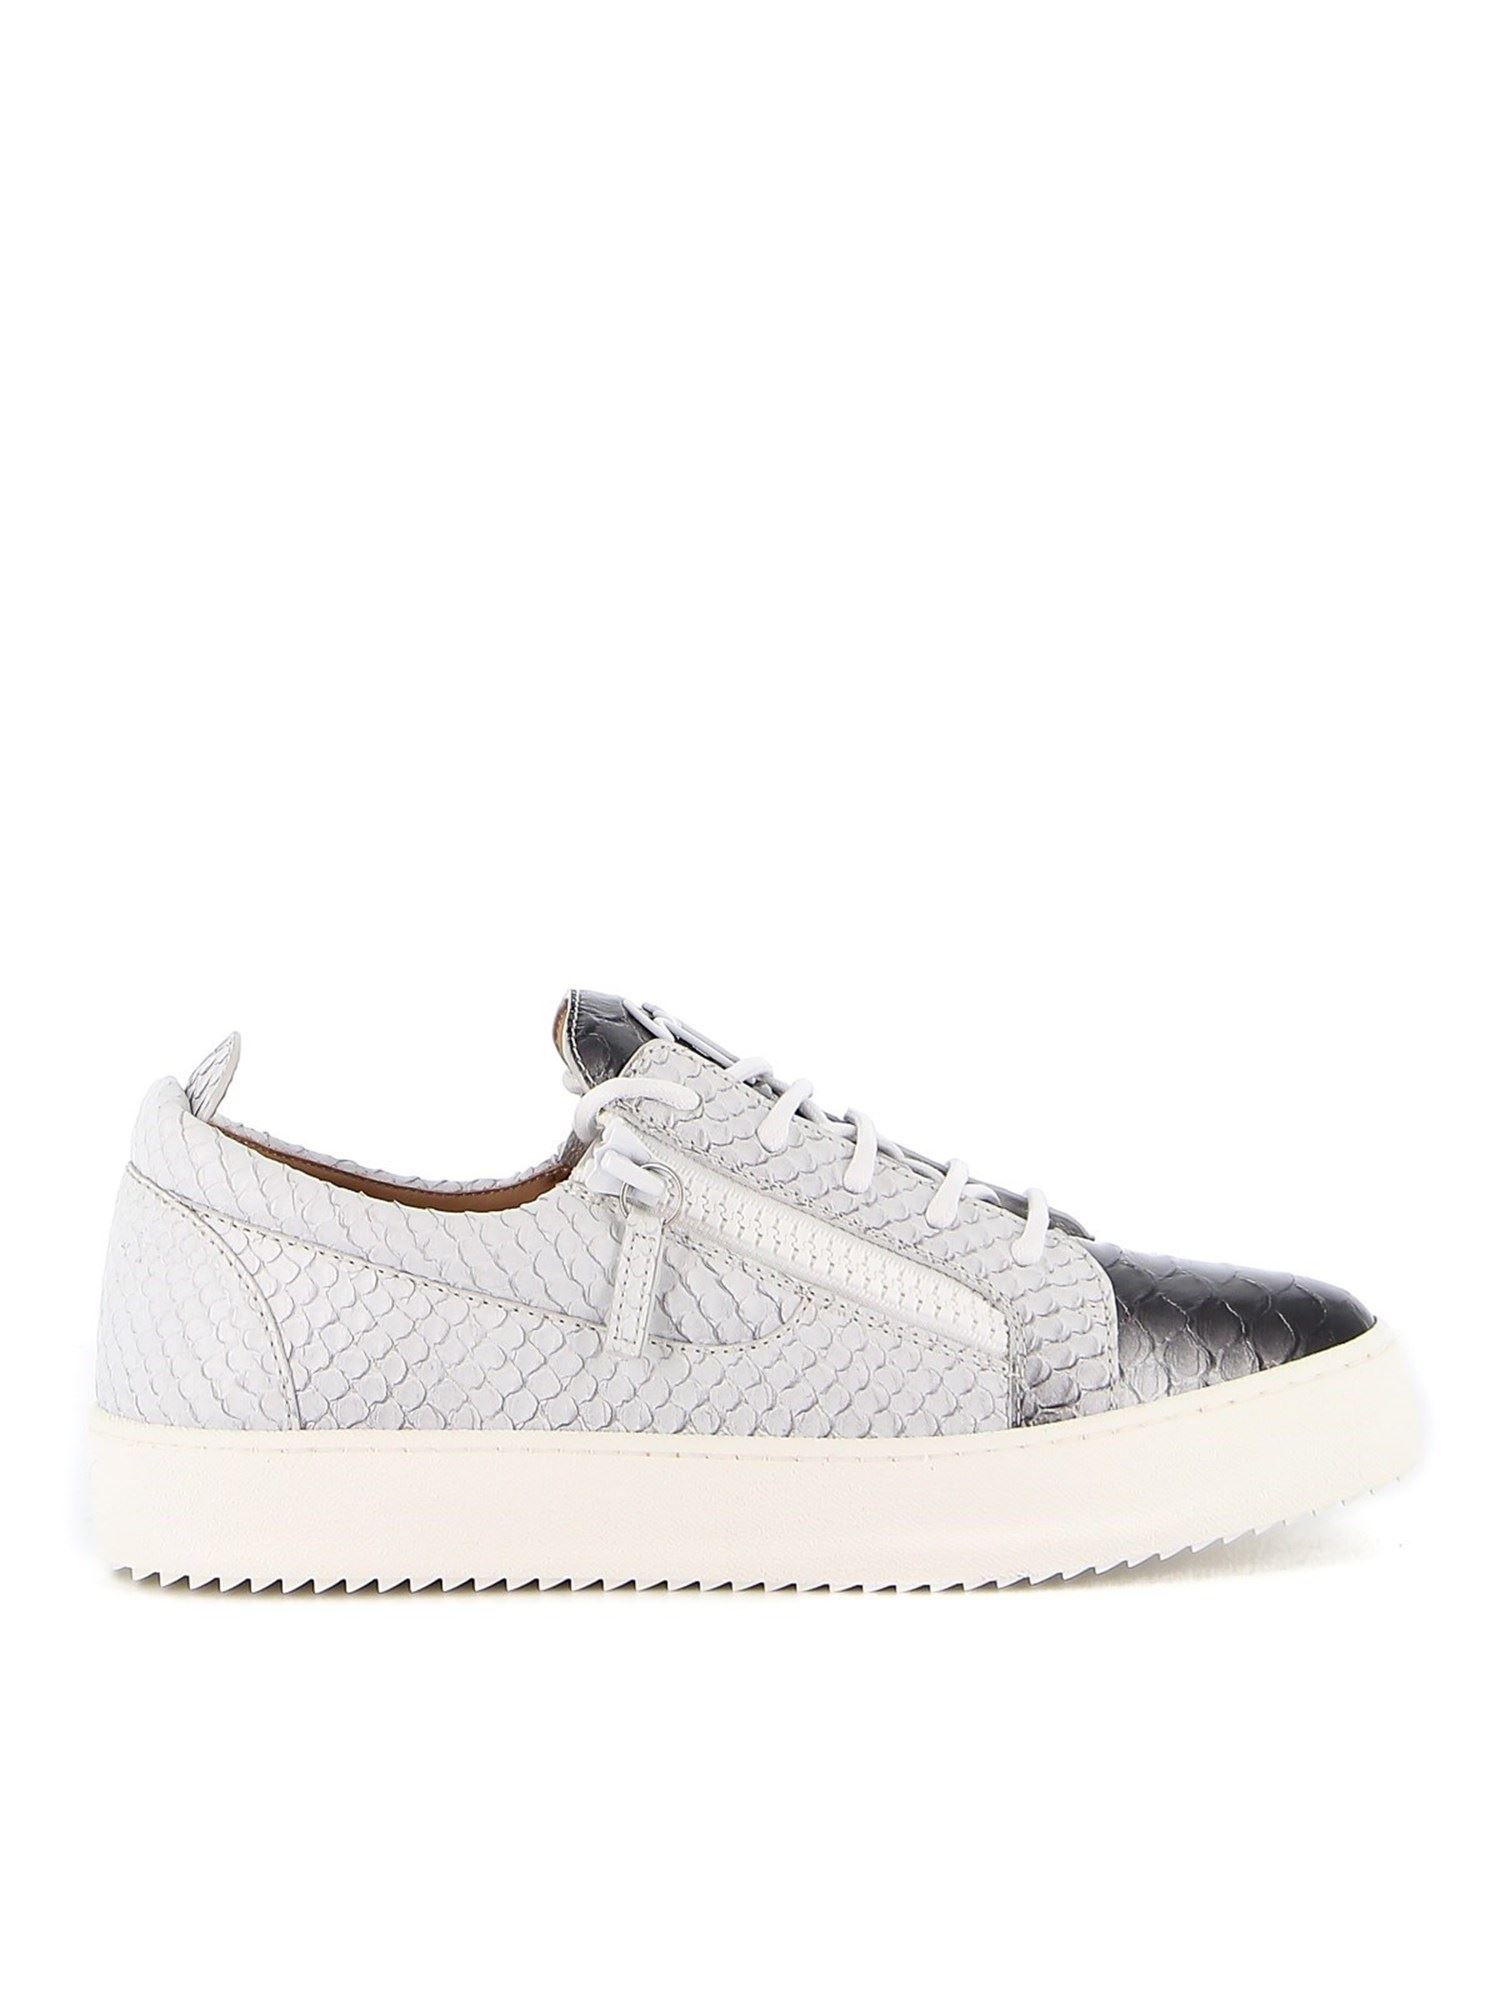 Giuseppe Zanotti Leathers GIUSEPPE ZANOTTI MAY LONDON SCALES EFFECT LEATHER SNEAKERS IN WHITE